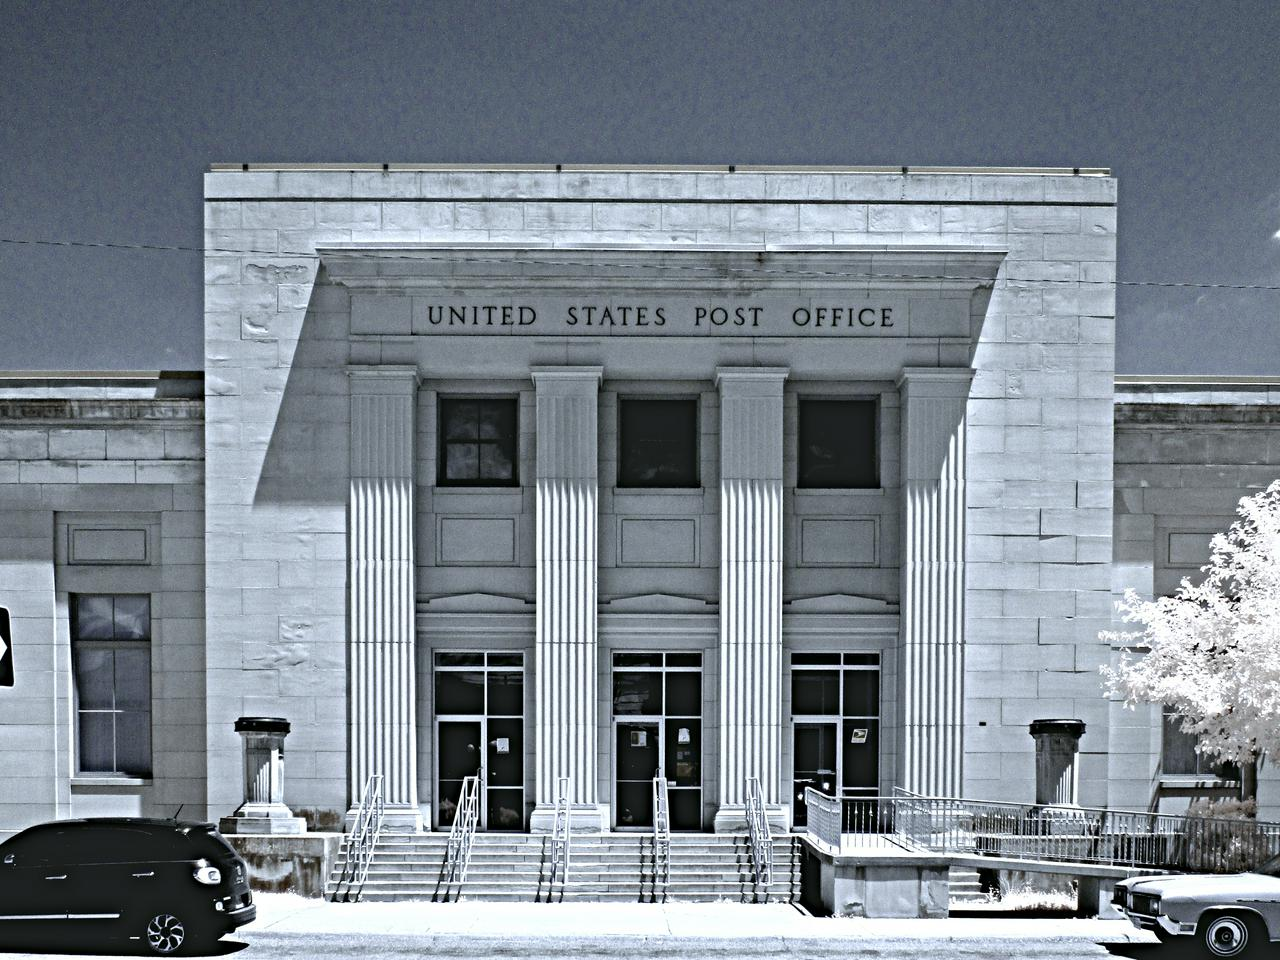 Exterior shot of post office